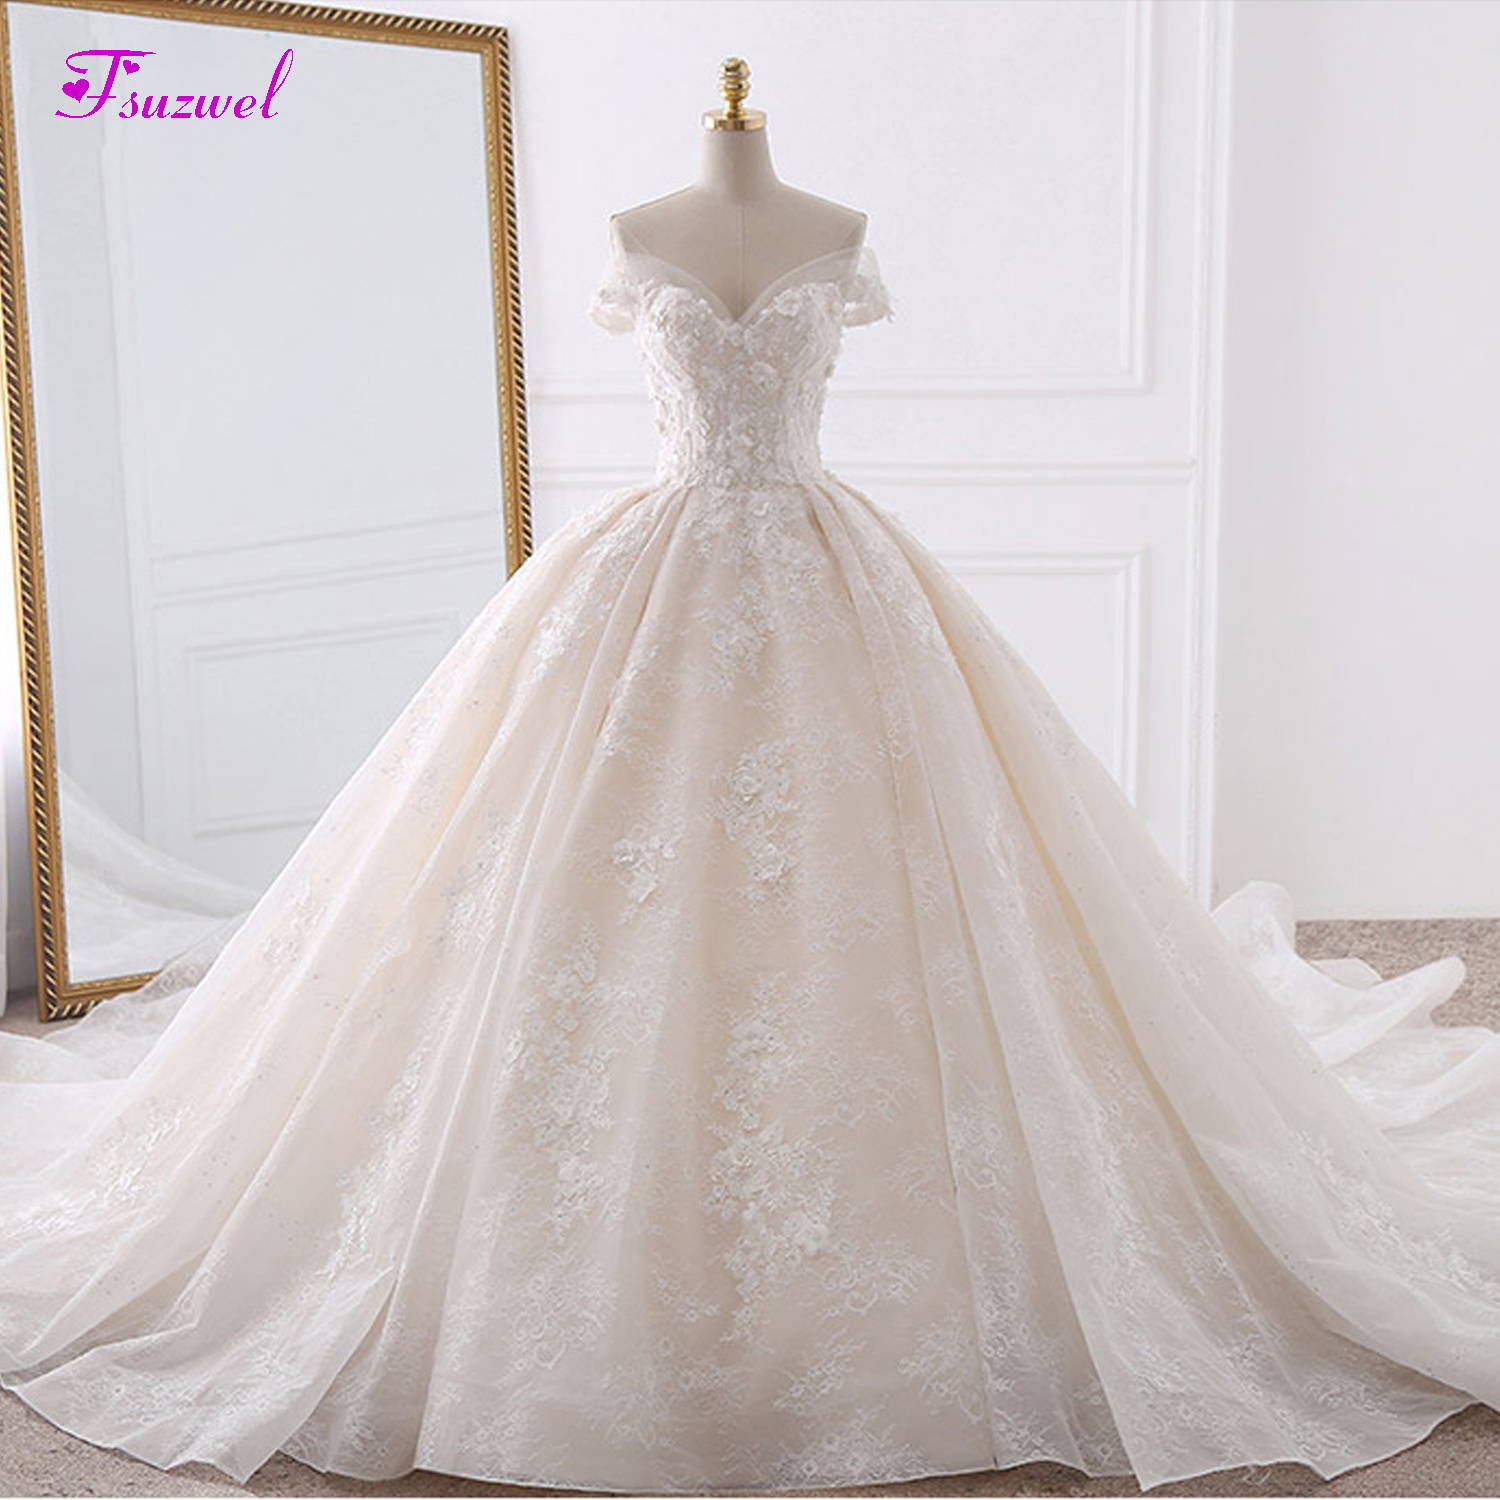 Vestido de Noiva Appliques Lace Flowers Princess Wedding Dresses 2019 Sweetheart Neck Pearls Royal Train Ball